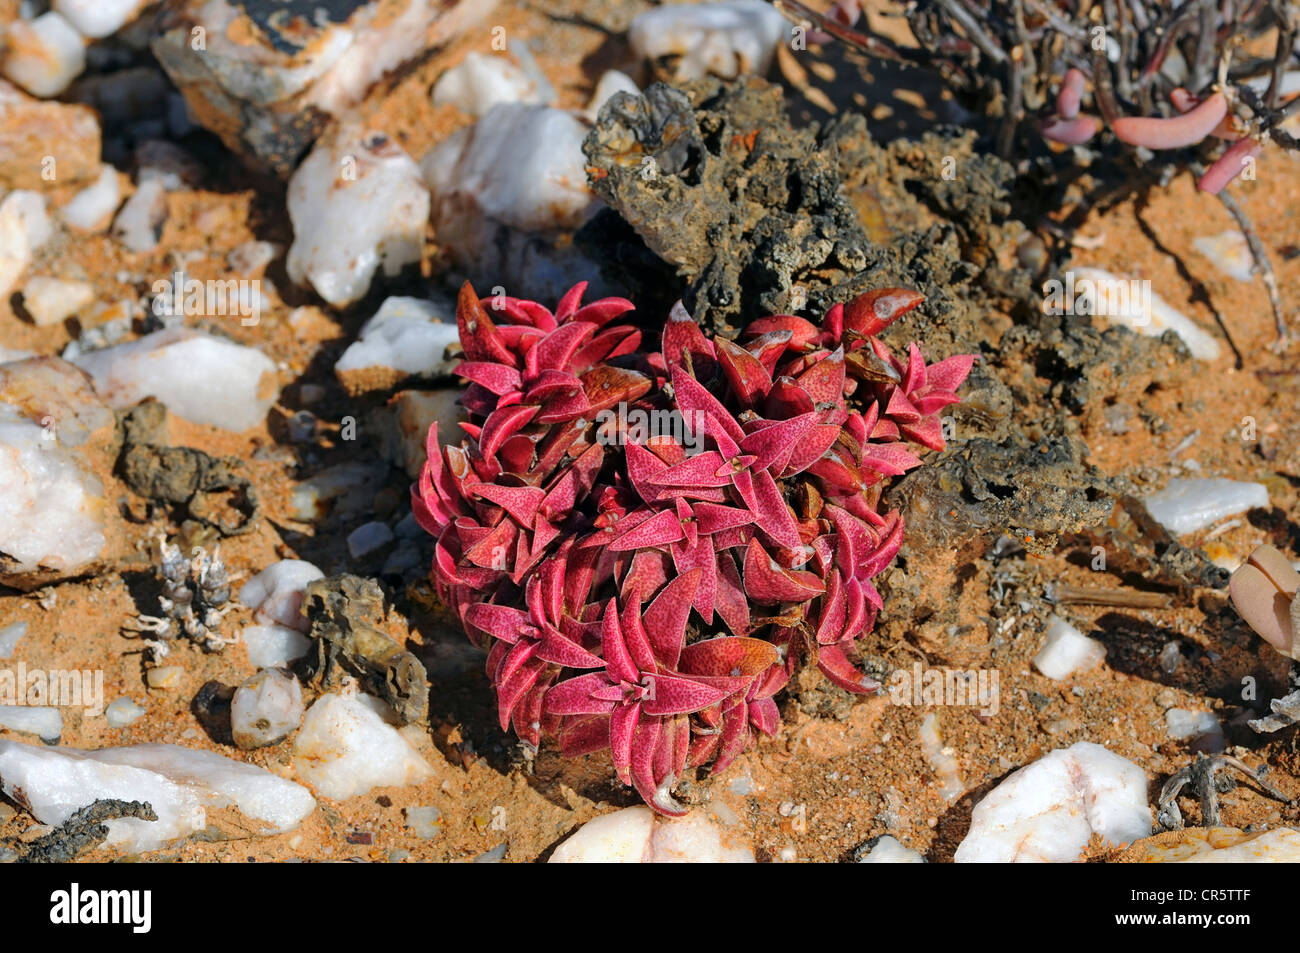 Crassula congesta turned red by lack of water and heat, Knersvlakte, Western Cape, Namaqualand, South Africa, Africa - Stock Image